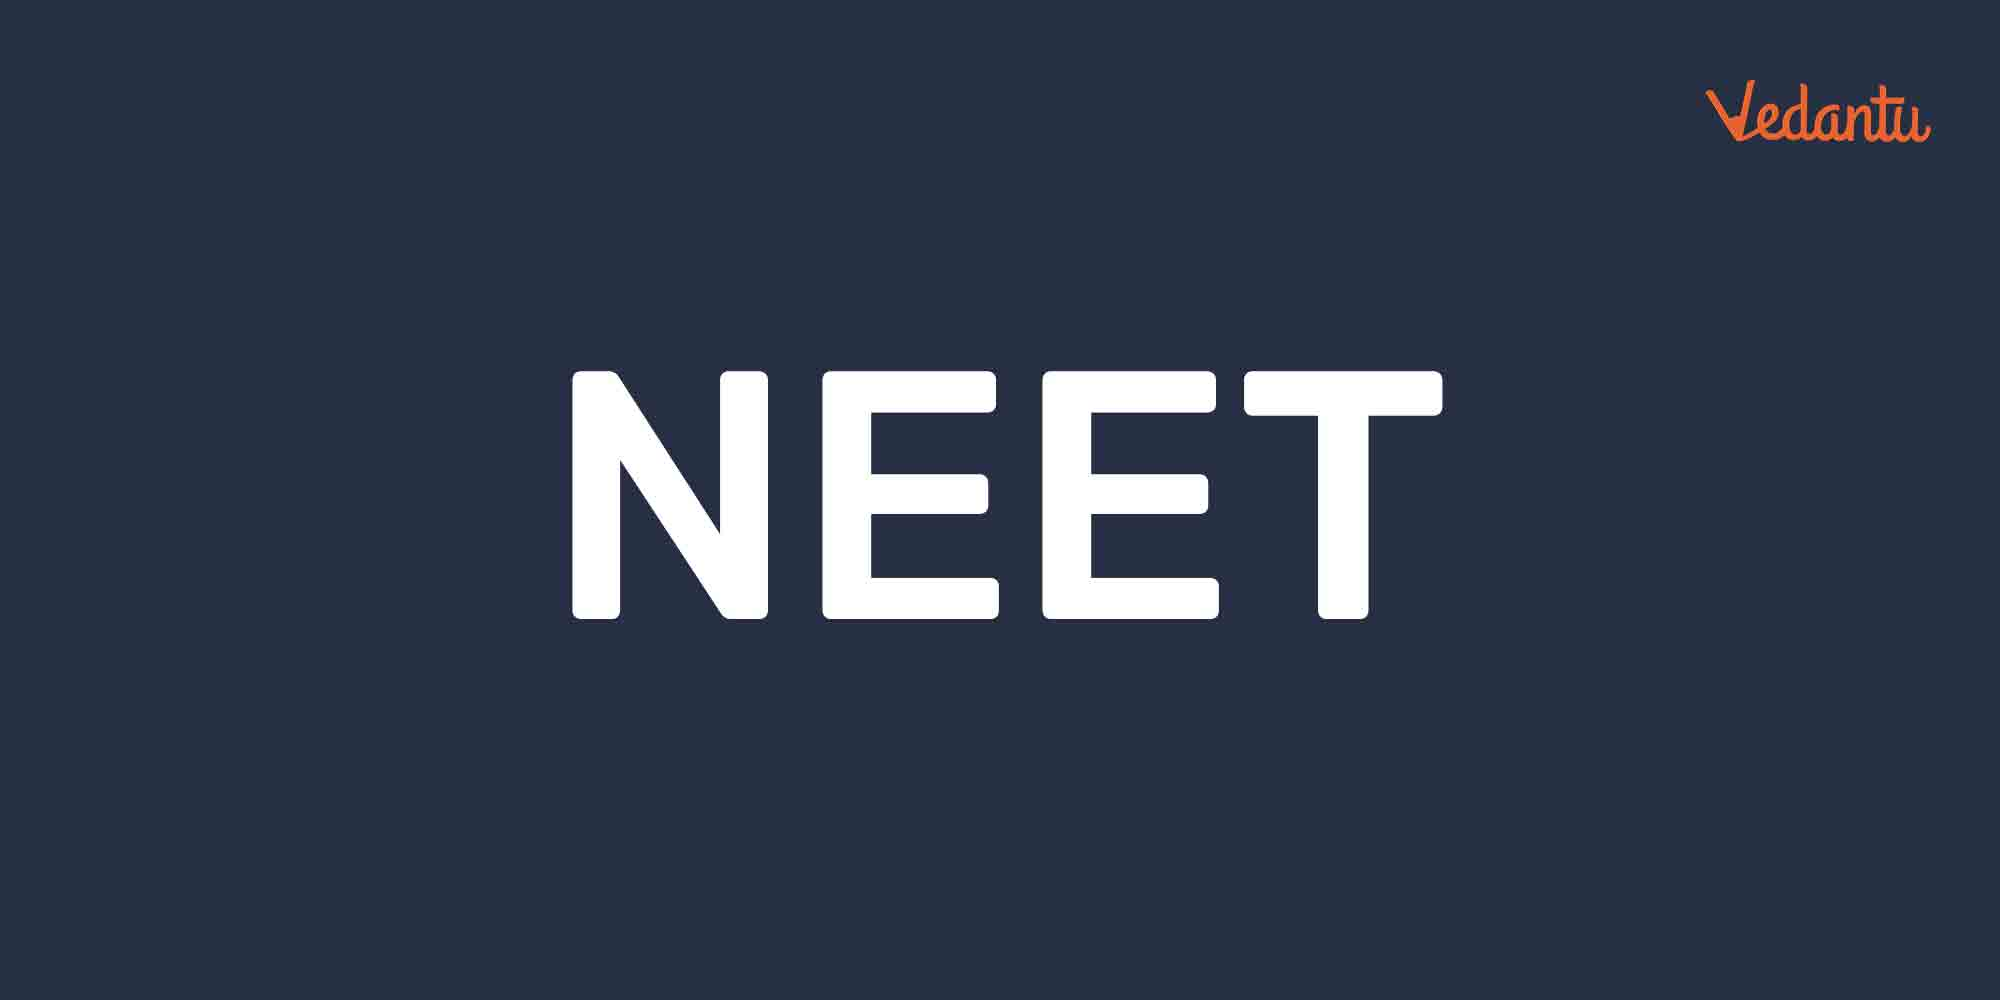 How Many Chemistry Questions in NEET Come From NCERT or of NCERT Type?